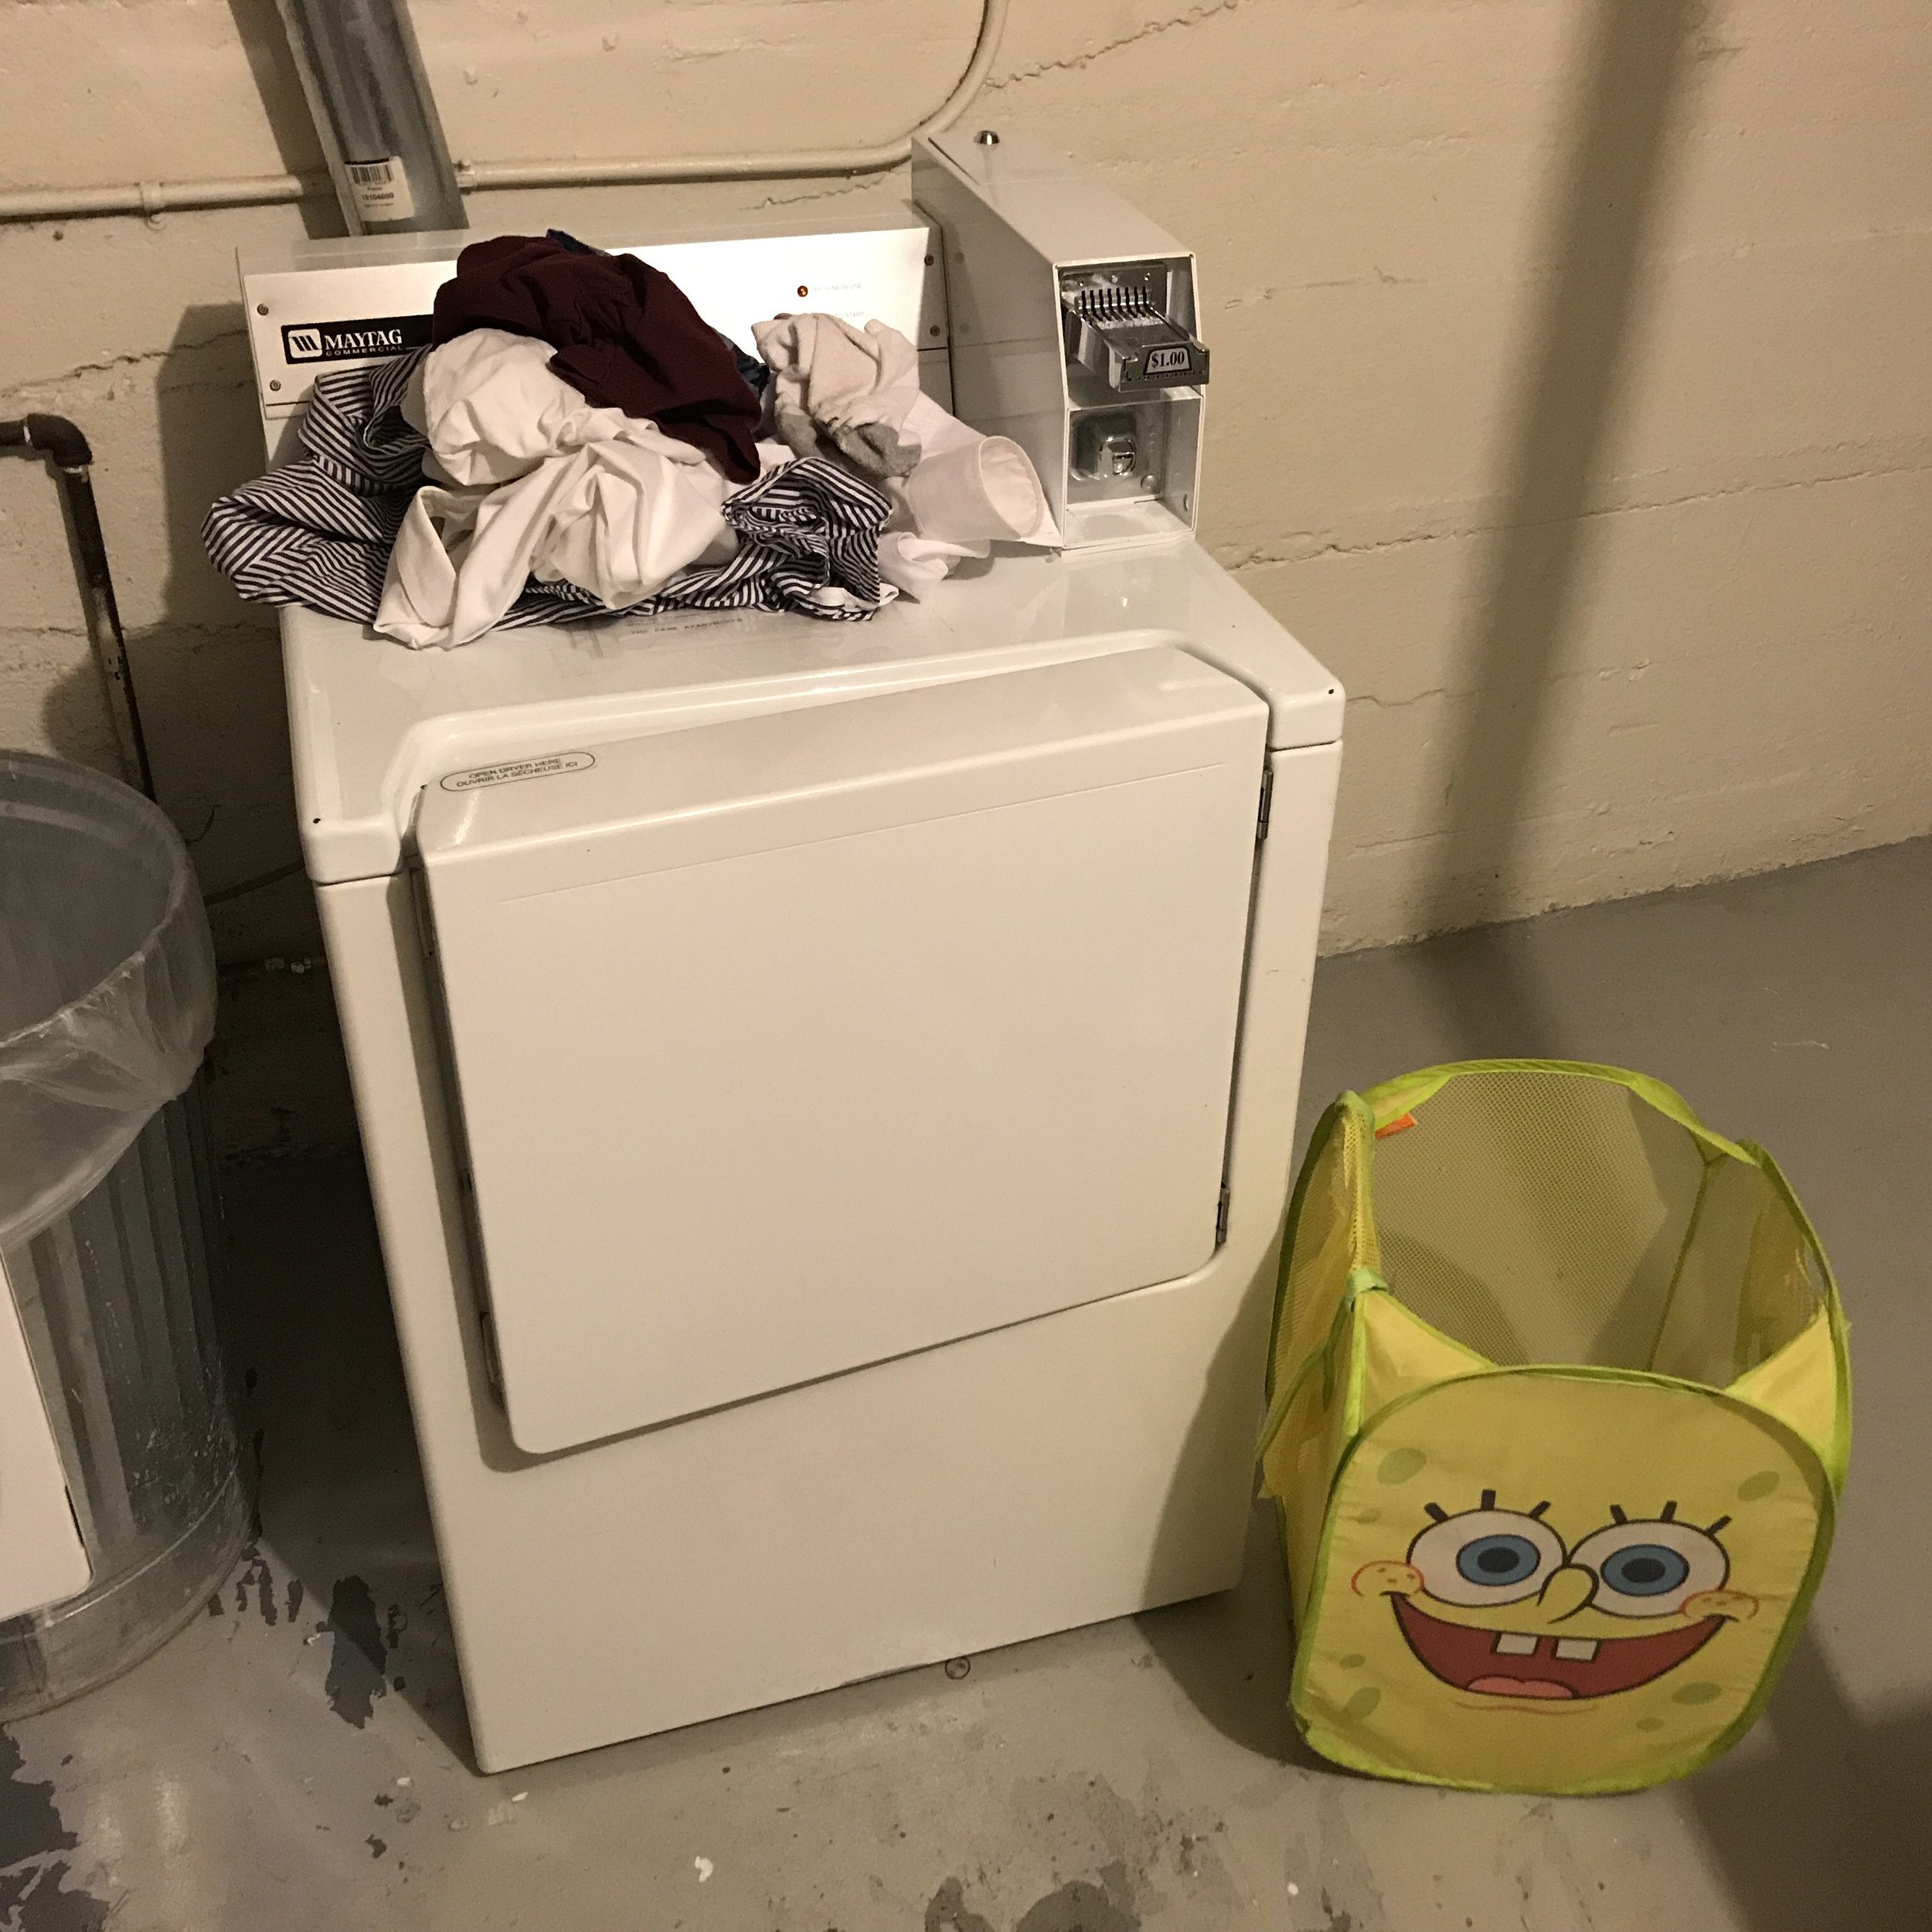 A carefully staged scene in my laundry room